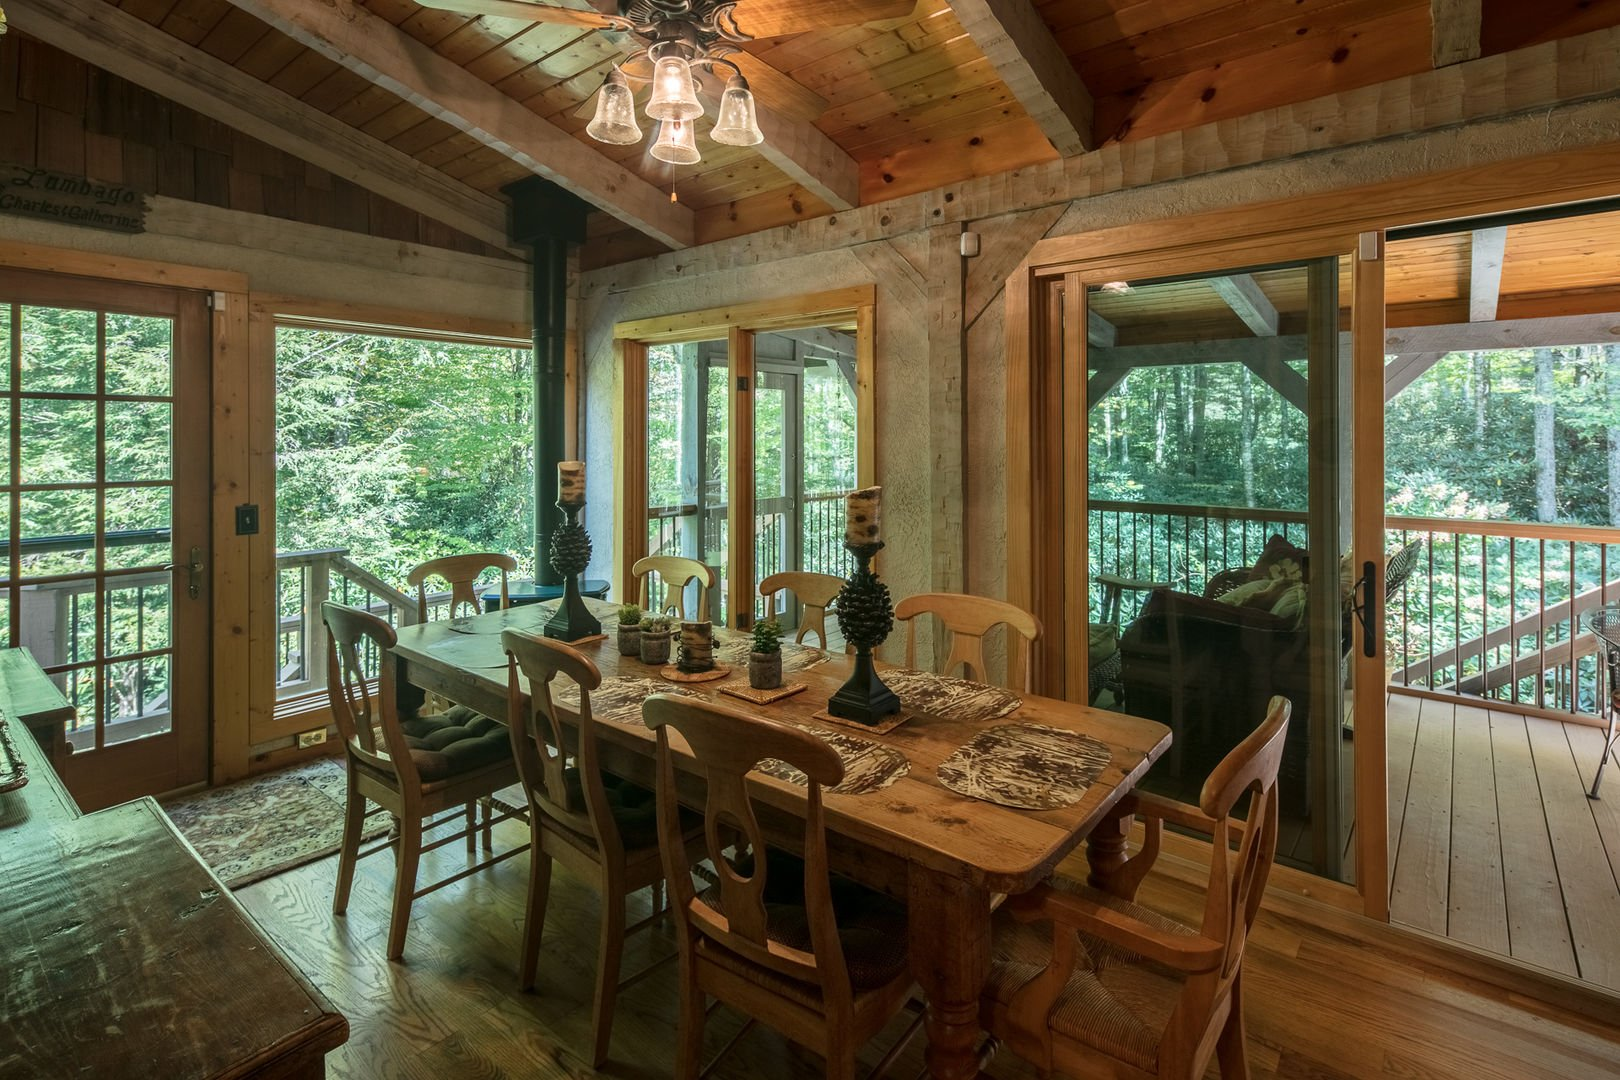 Dining indoors with a view of the forest at Almost Perfect in Blowing Rock, NC.